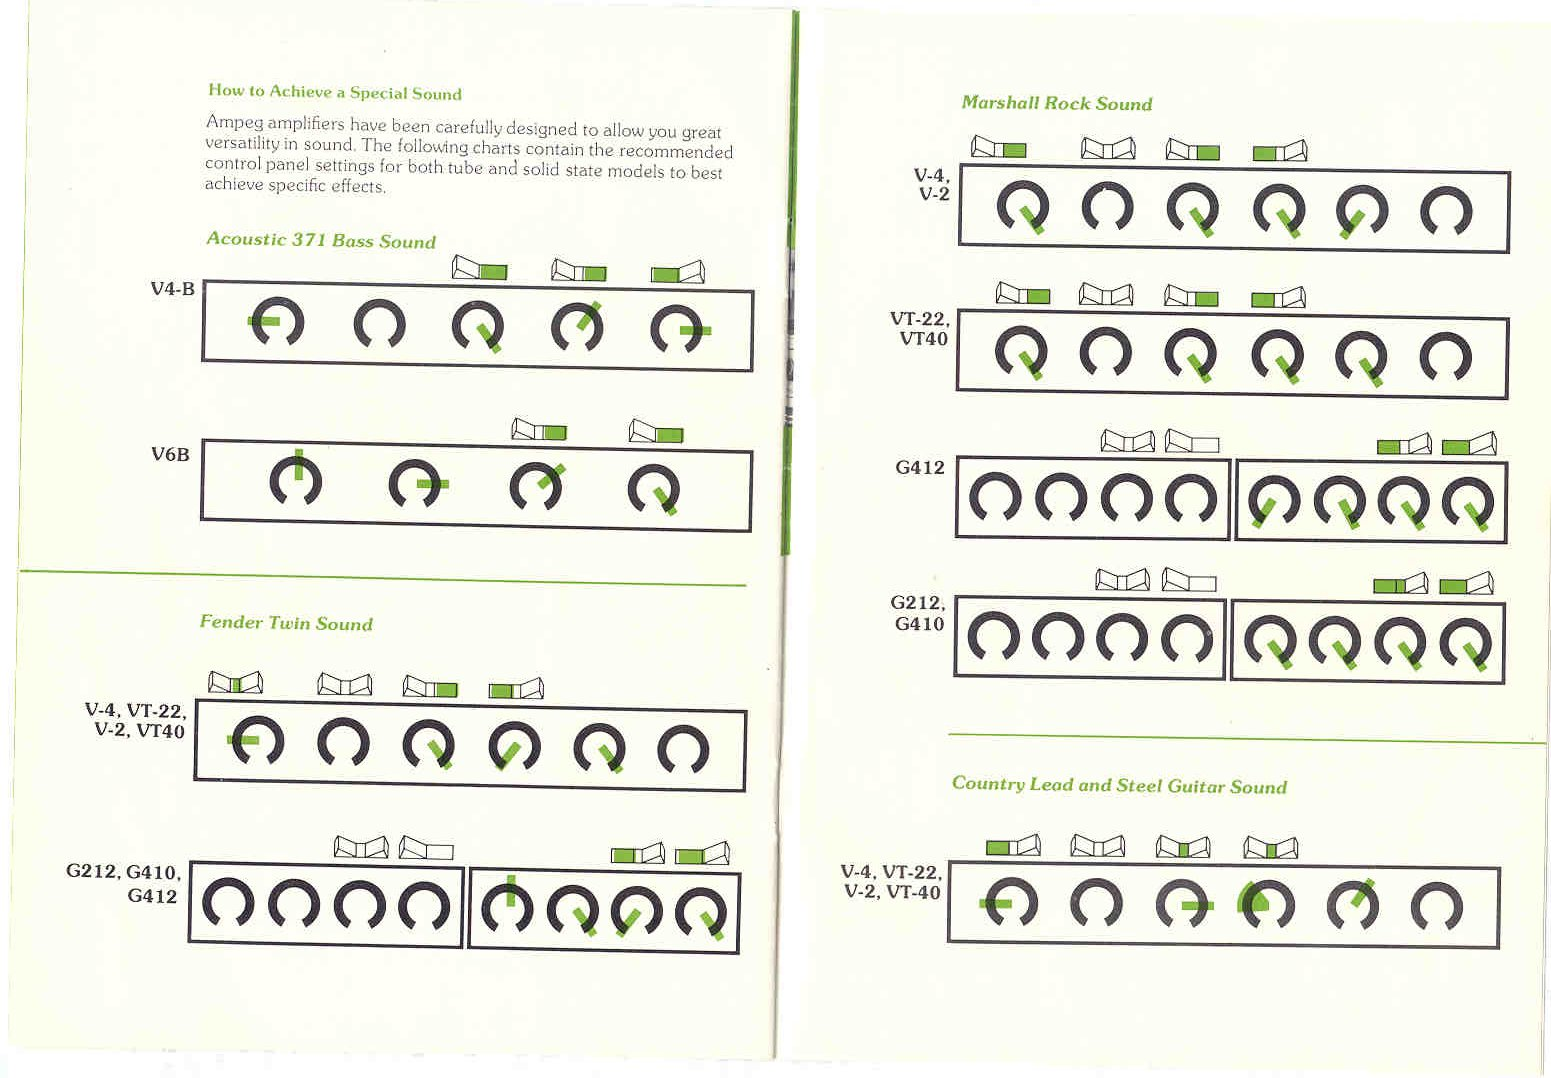 Ampeg V4 Speaker Cab Wiring Diagram Trusted Bass Cabinet Diagrams Manual Catalogs Com All The Time